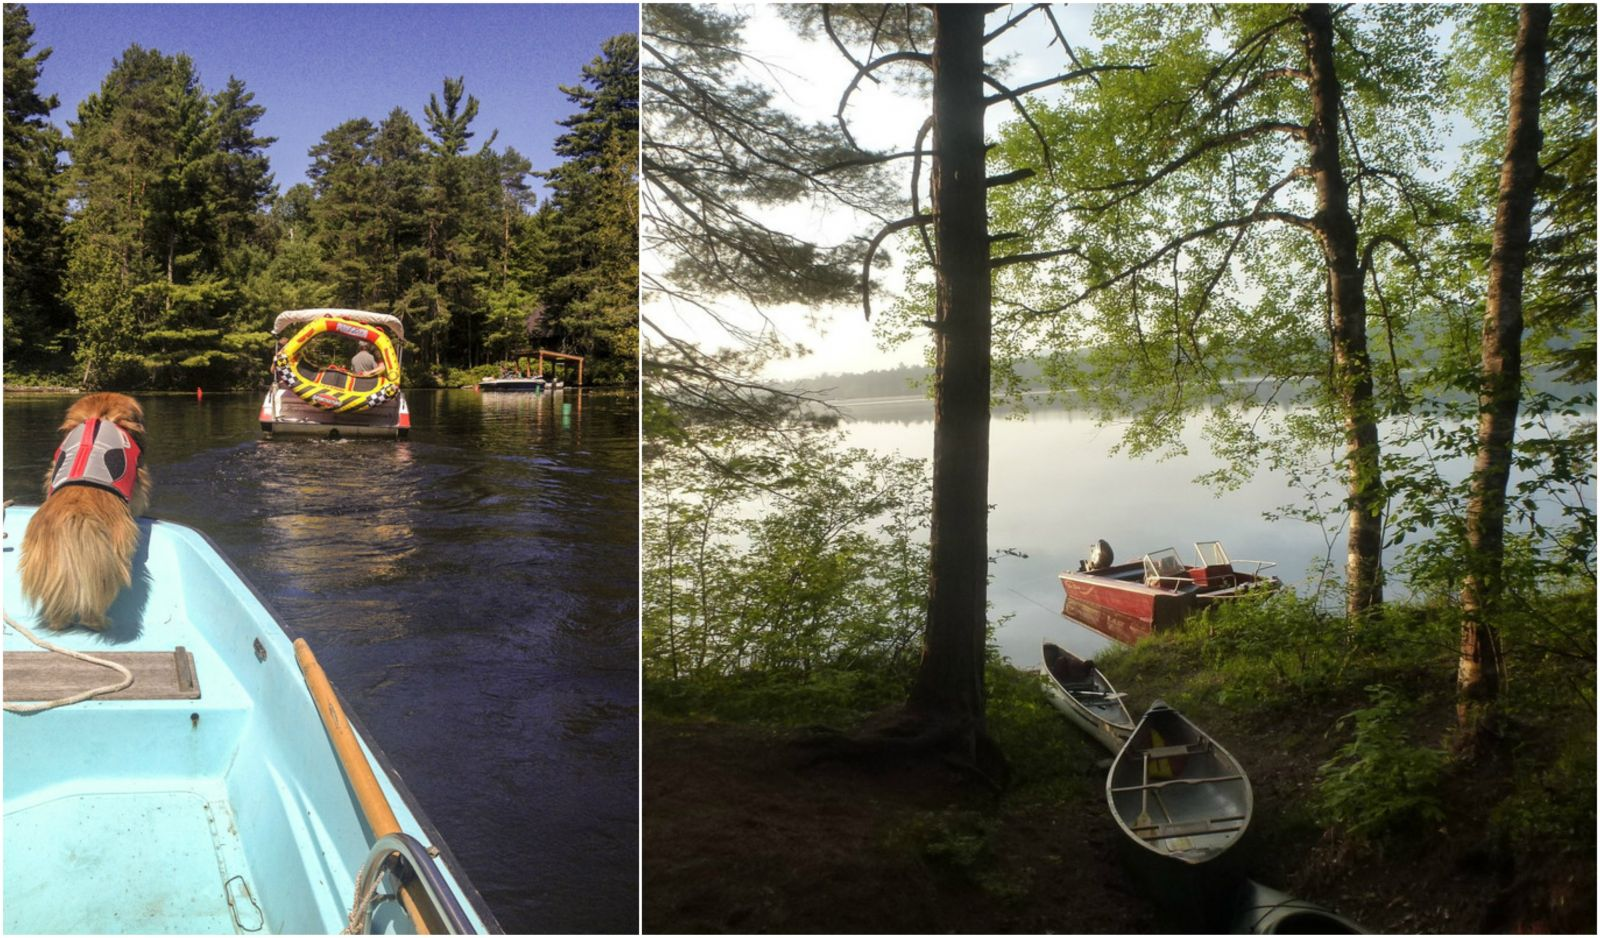 All kinds of boating at Fish Creek State Campground. And bring the doggie!